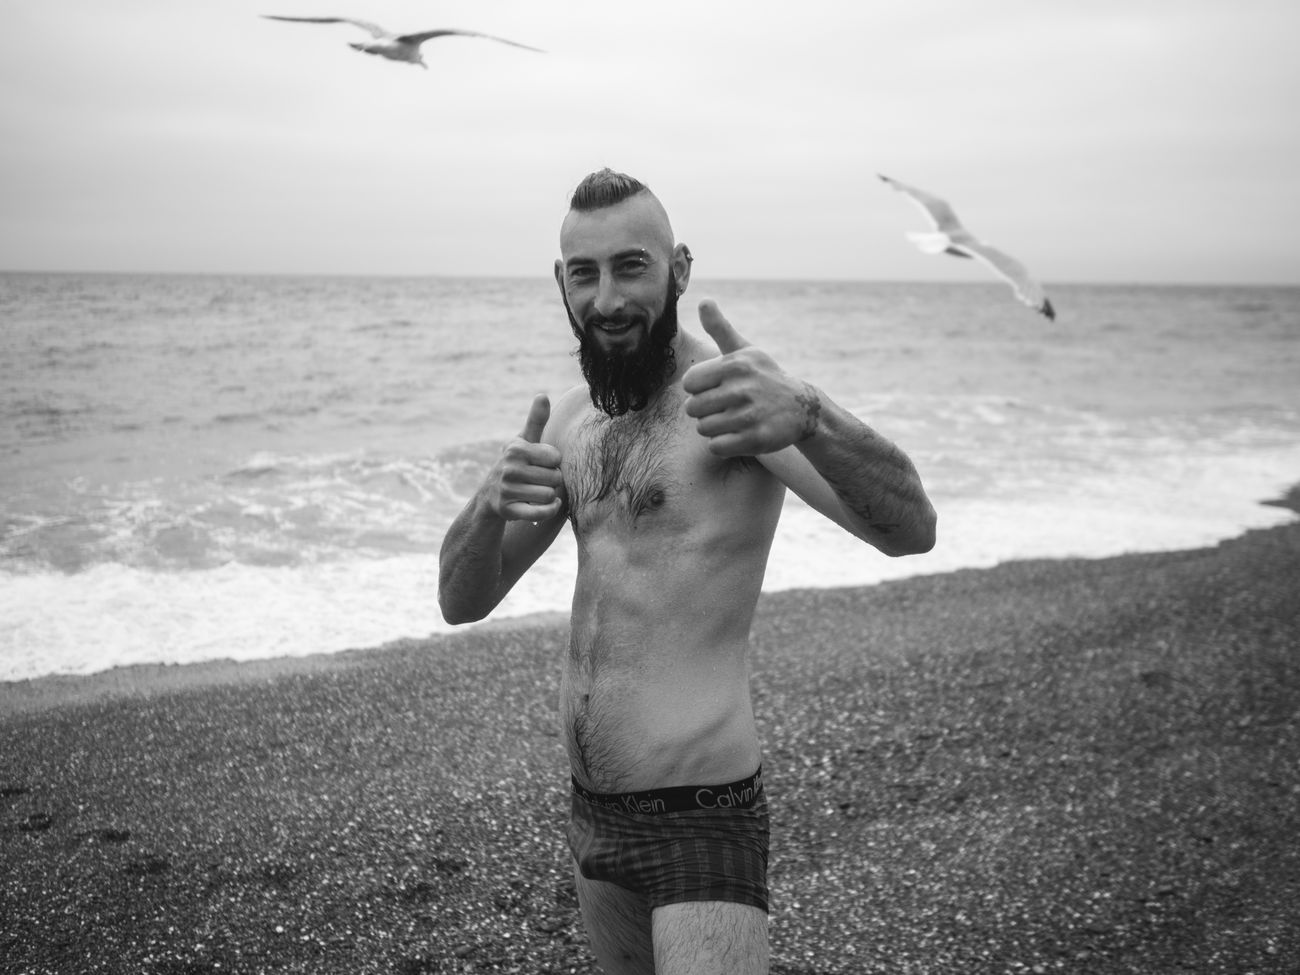 Brighton Beach couple of weeks ago. Beach Sea Shirtless Only Men One Man Only Men Portrait One Person Looking At Camera Place Of Heart Streetlife Cıty Life Stranger Lifestyles The Street Photographer - 2017 EyeEm Awards Street Photography Olympus Pen-f Maxgor Urban Street Urbanlife Cıty Human Face Live For The Story Happiness